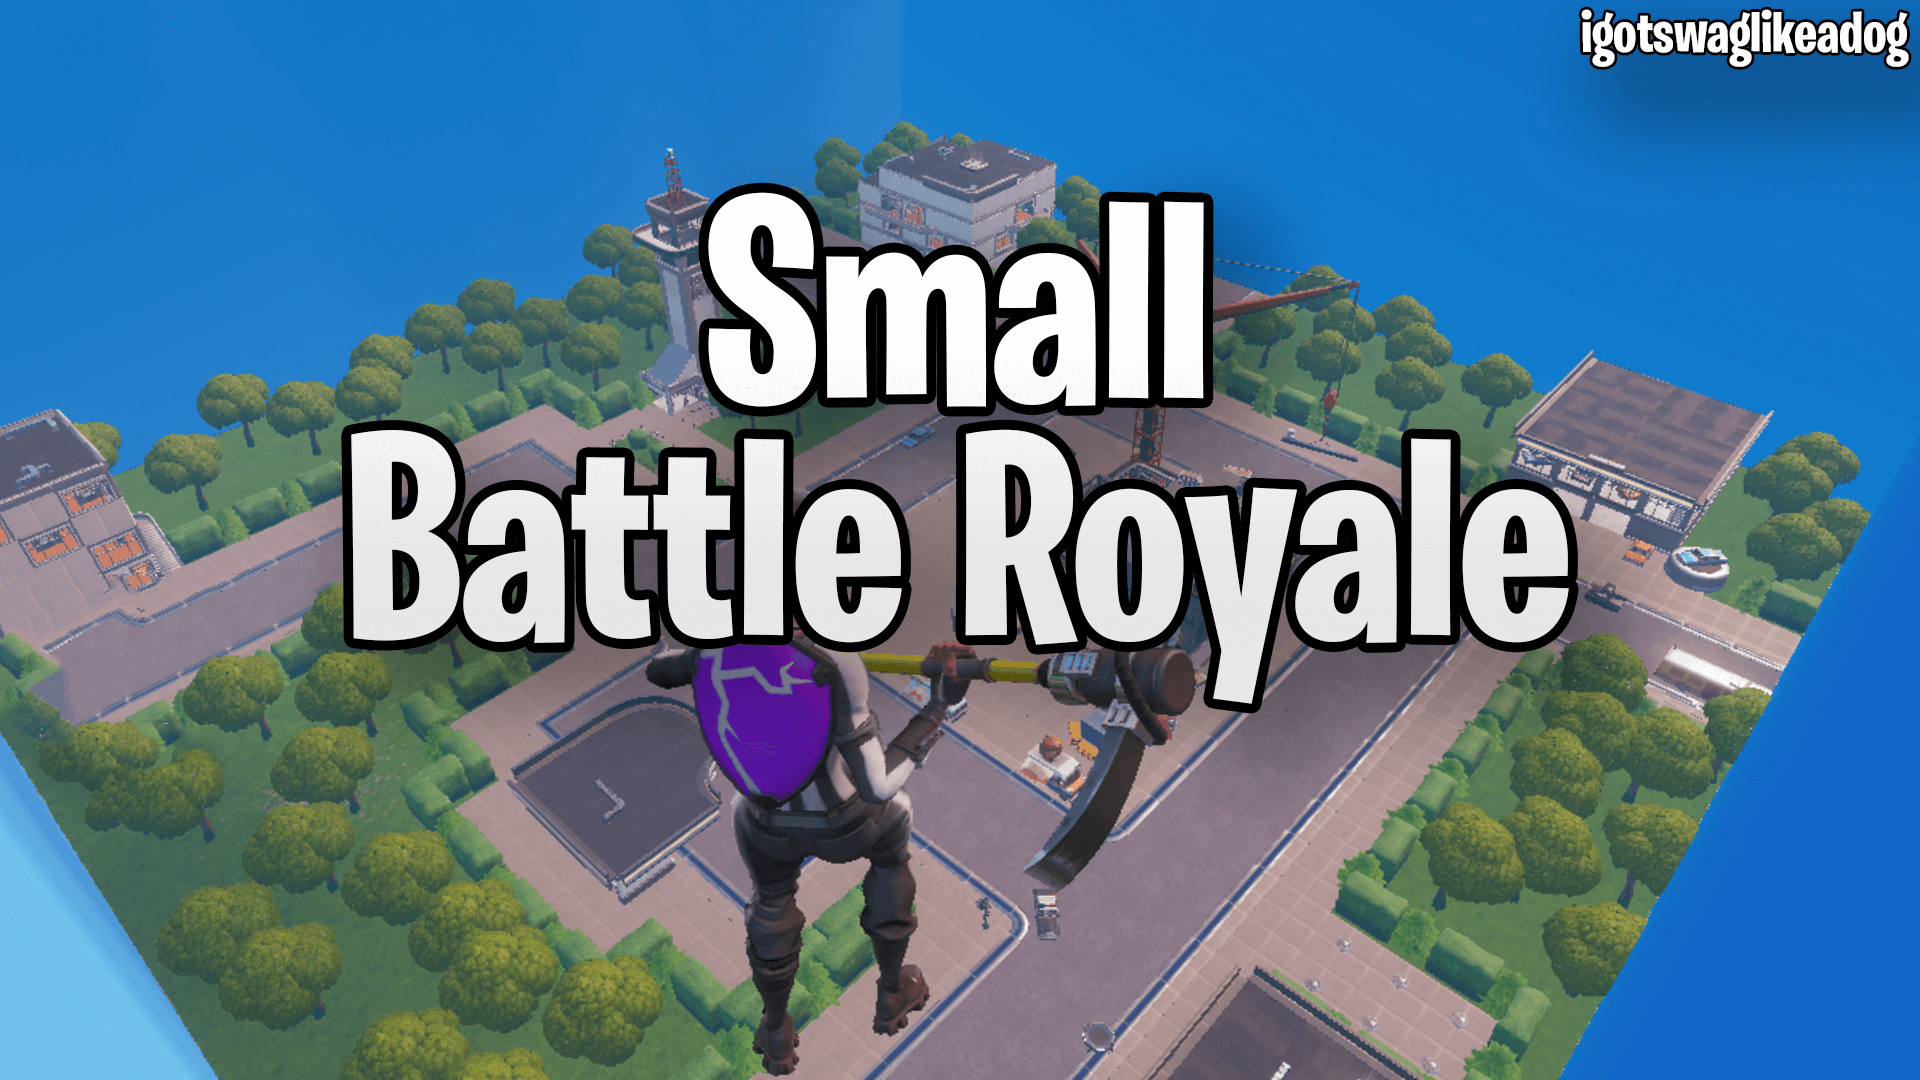 SMALL BATTLE ROYALE (4 PLAYERS) V1